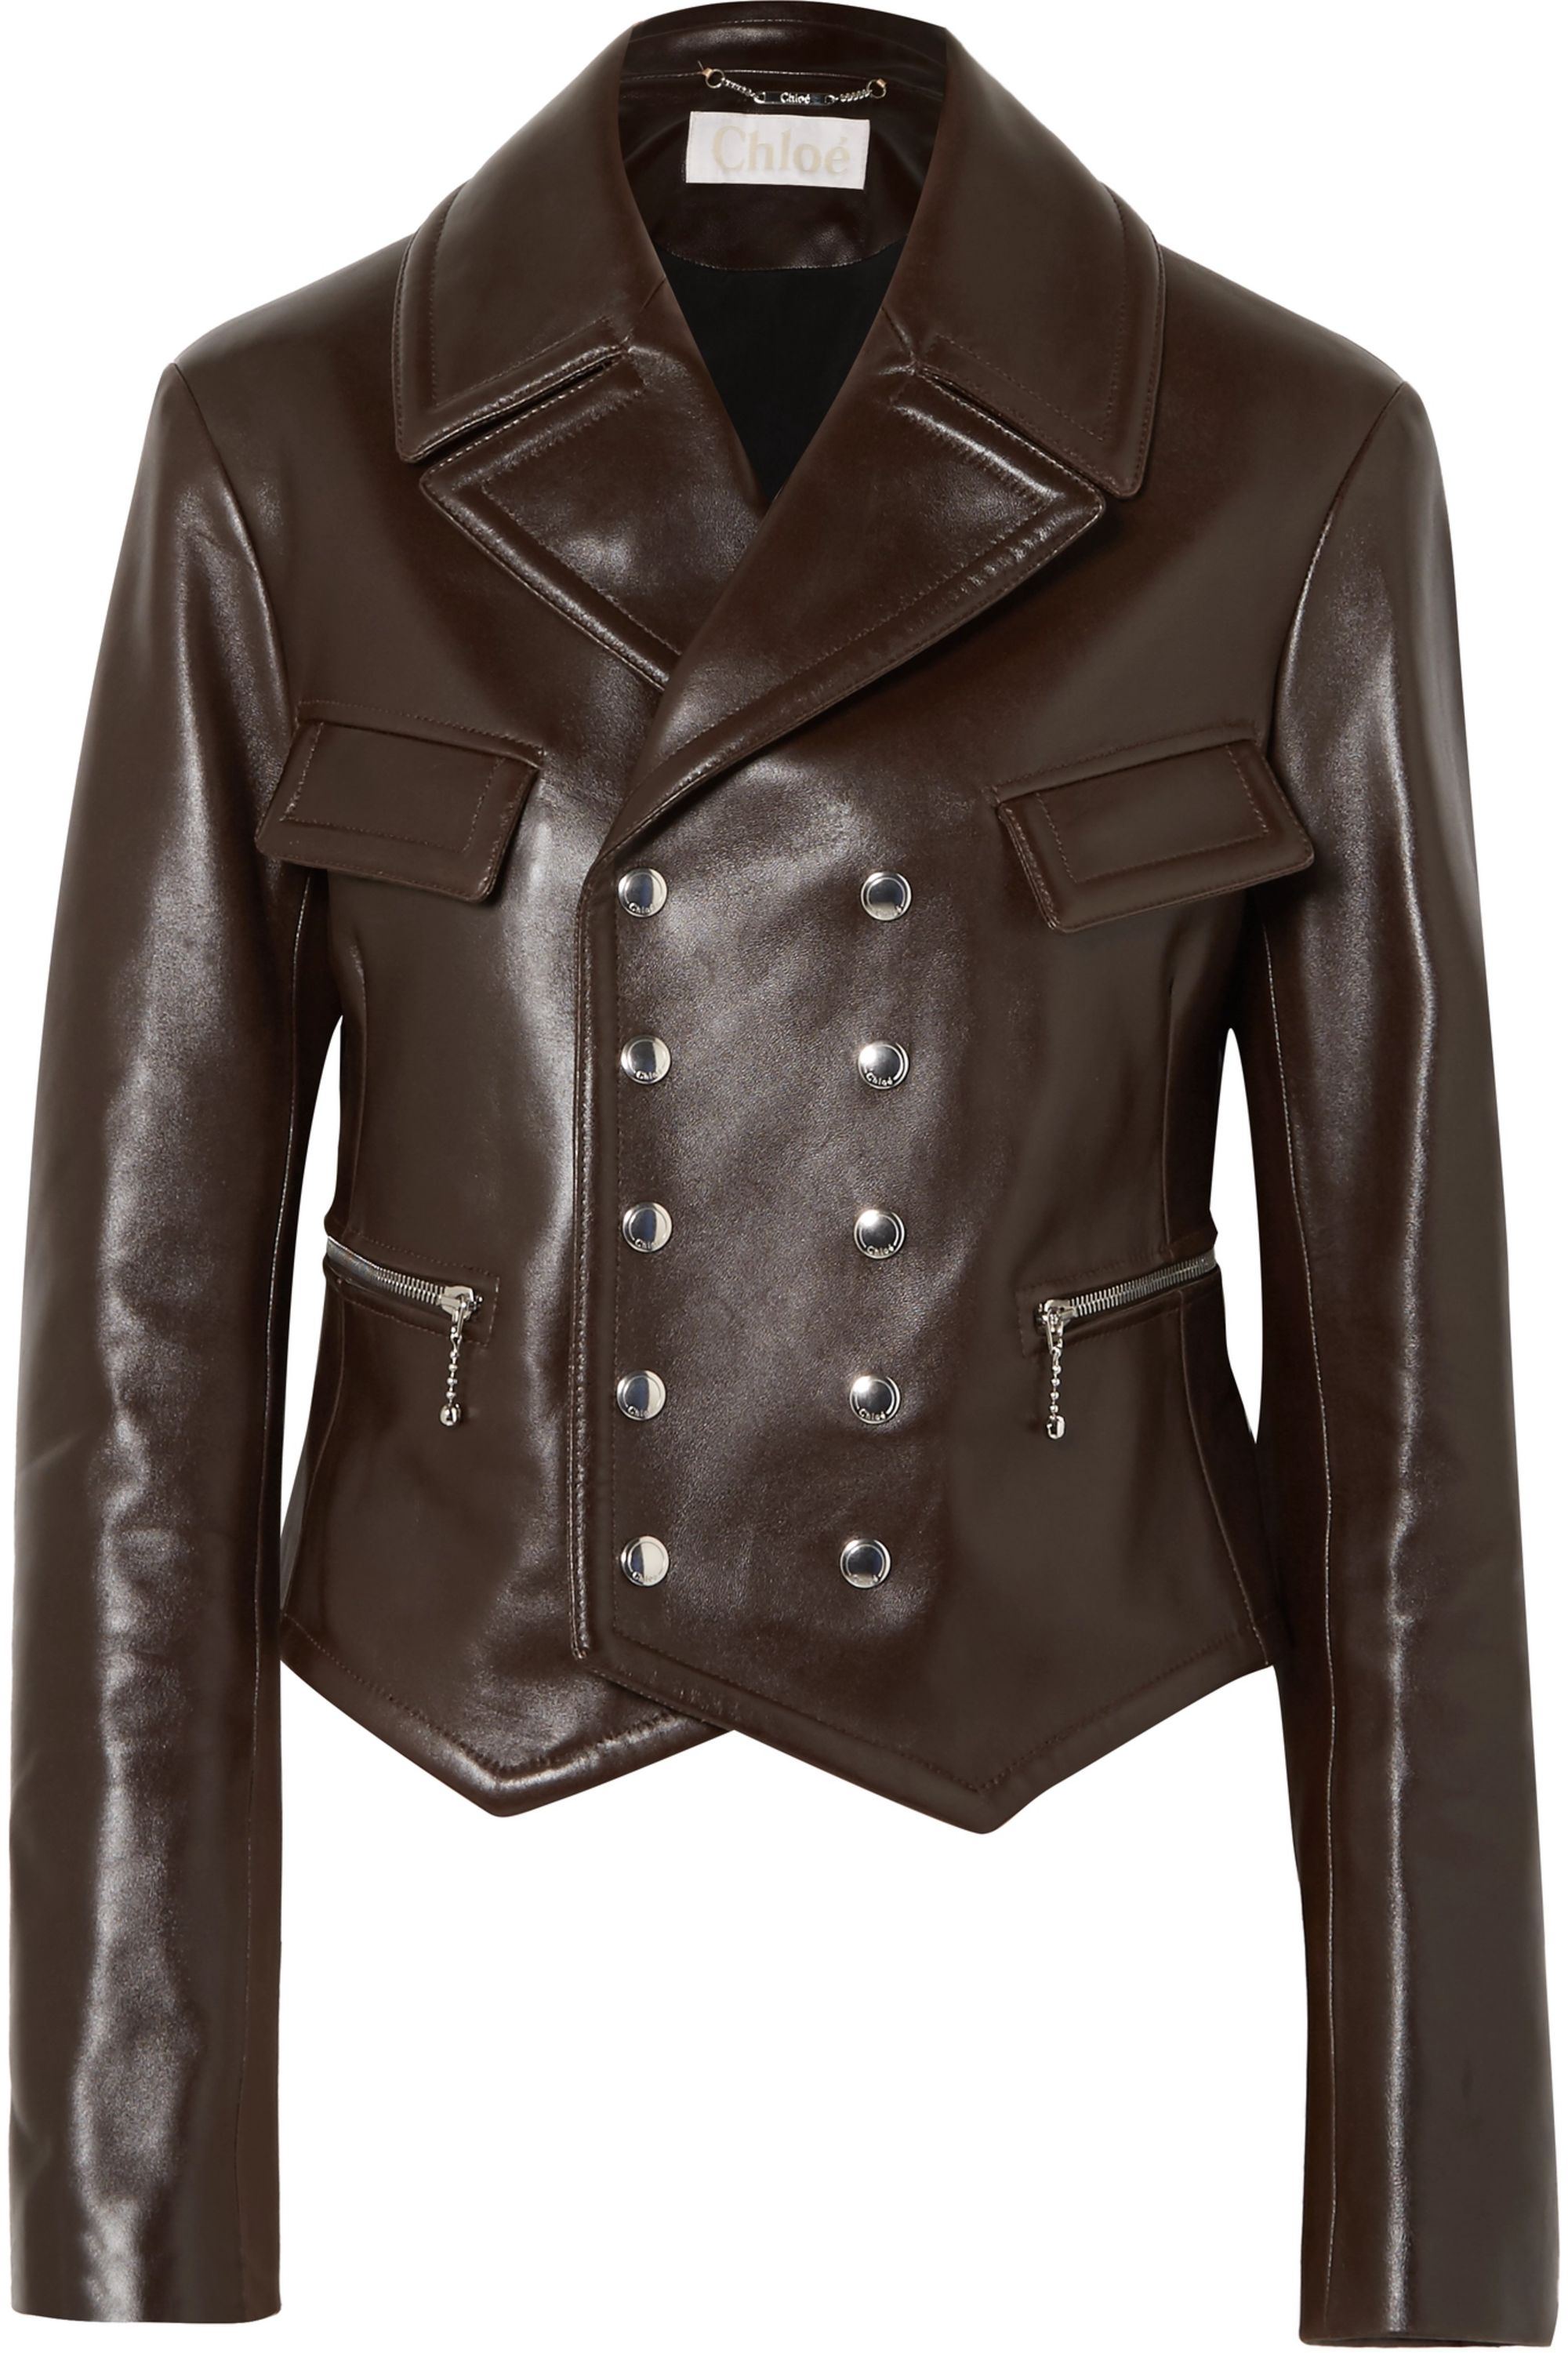 Chloé Double-breasted leather biker jacket